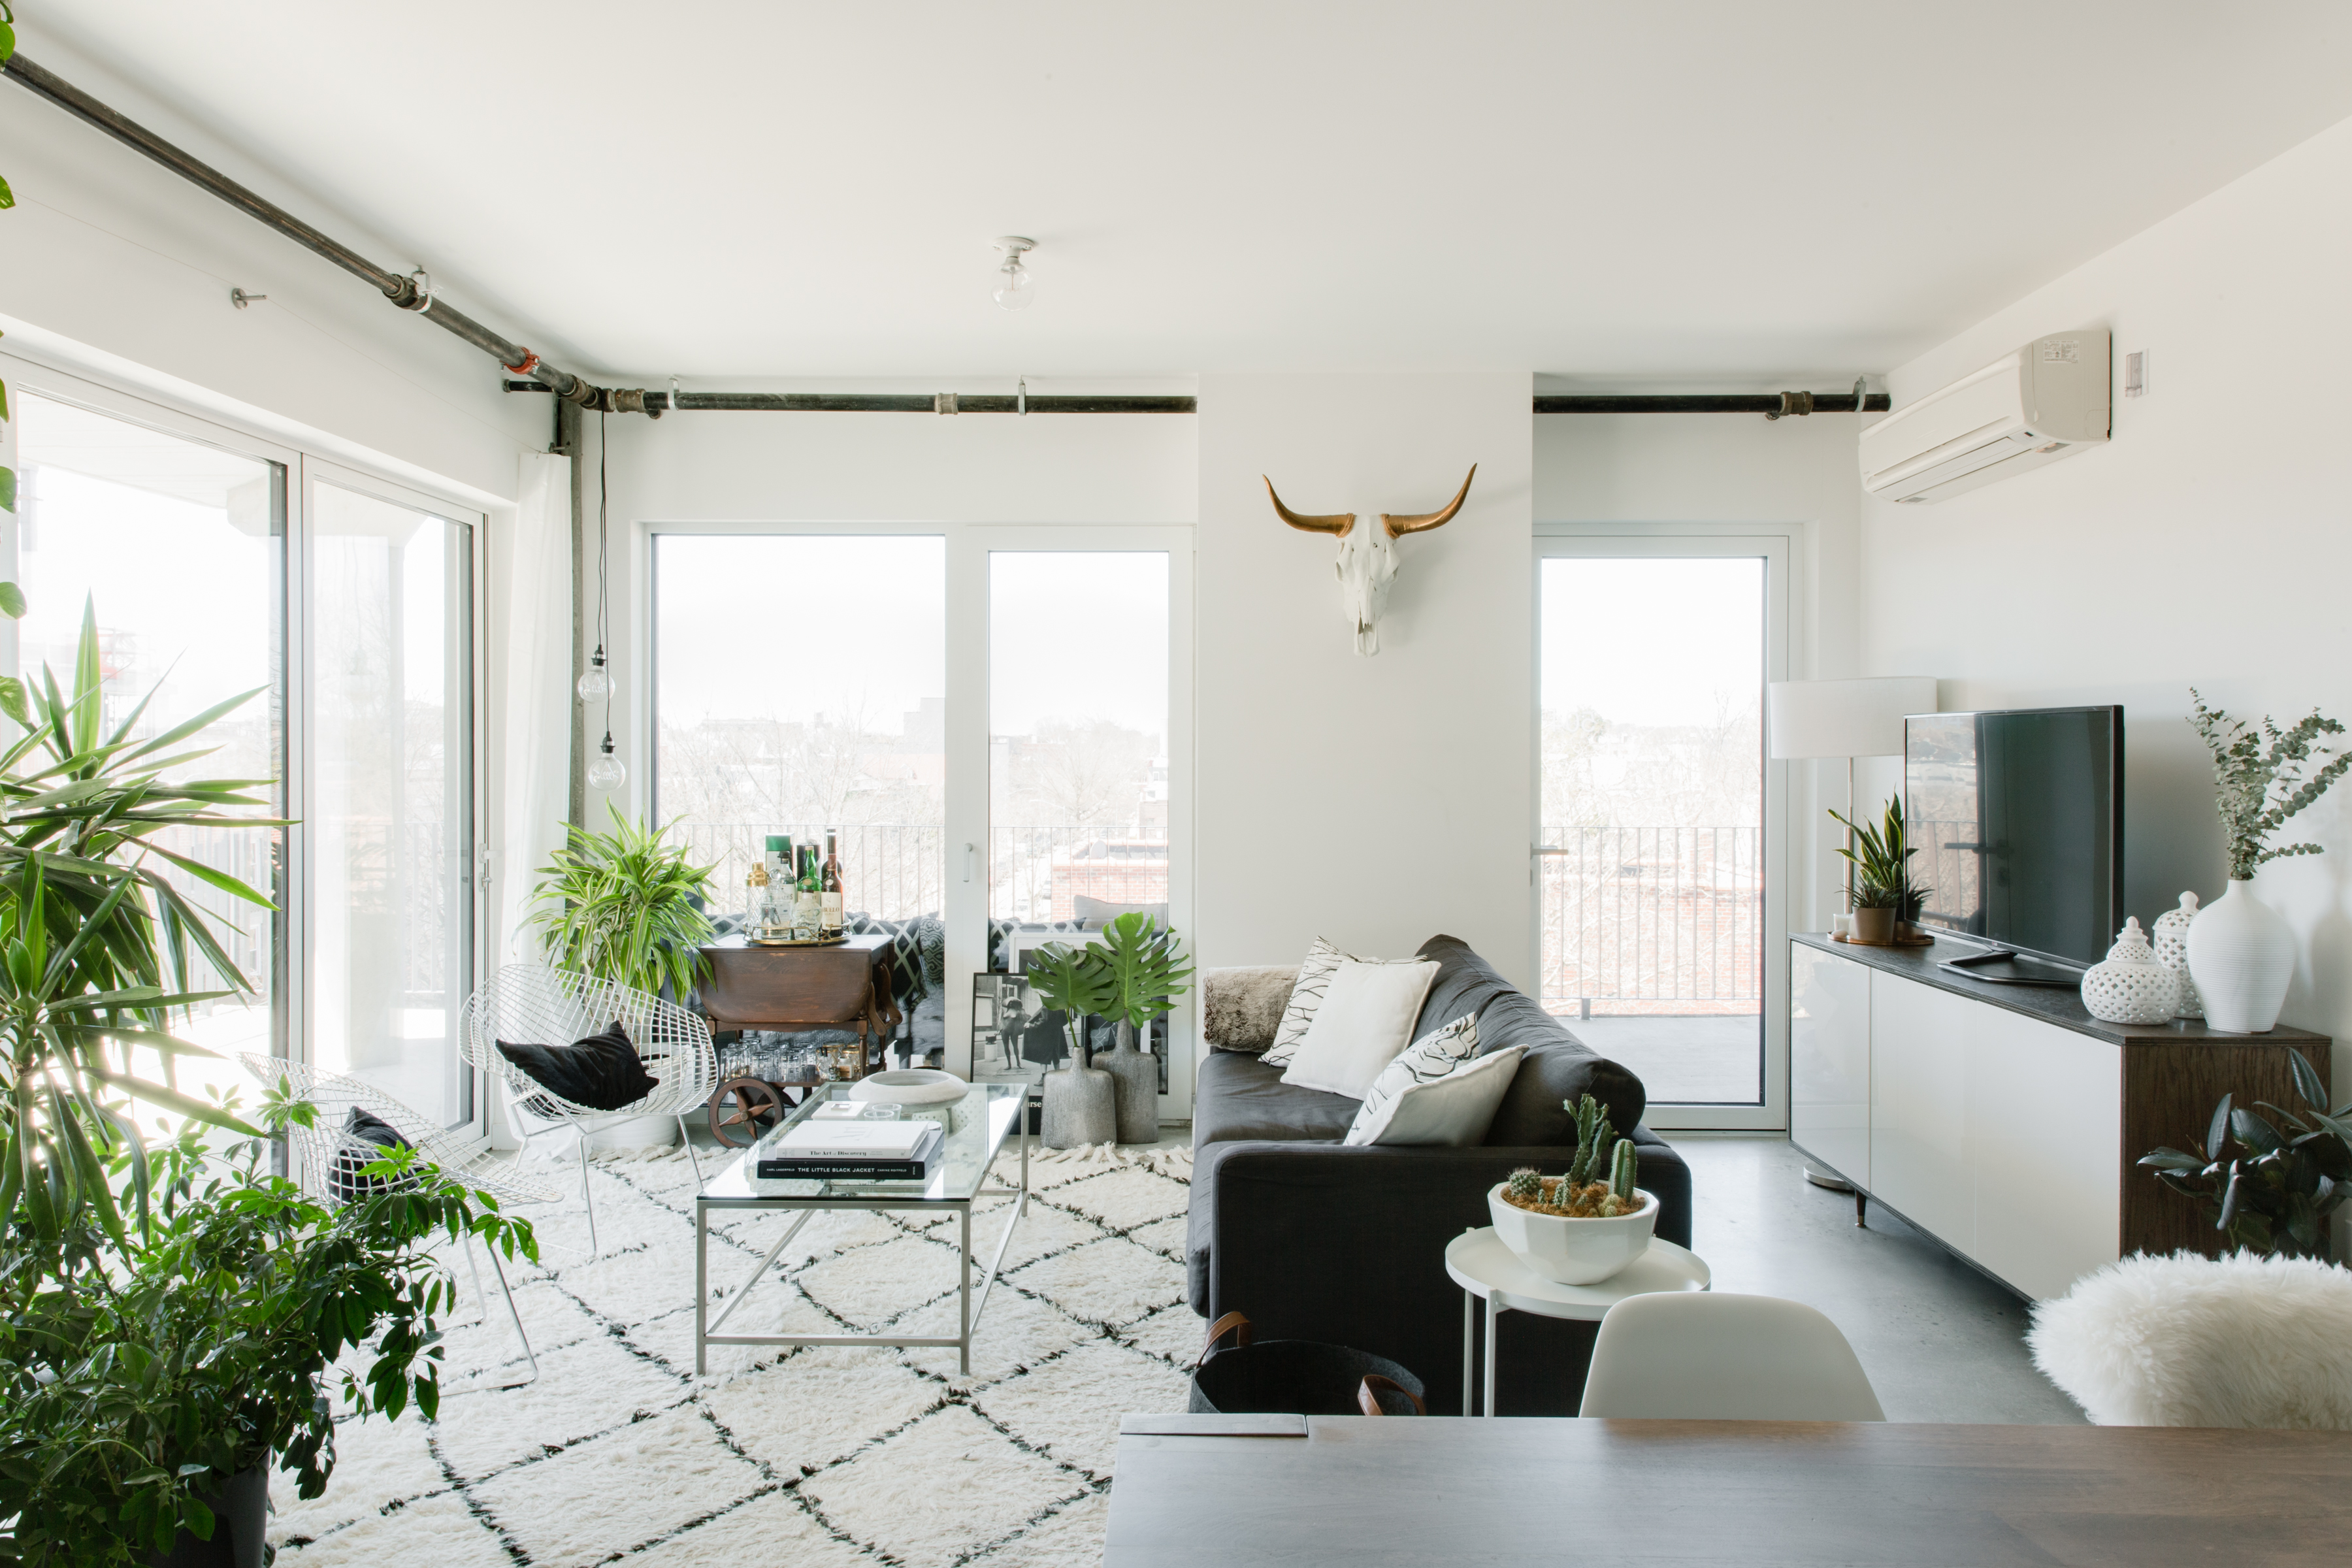 The Rules Of Scandinavian Design According To Experts Apartment